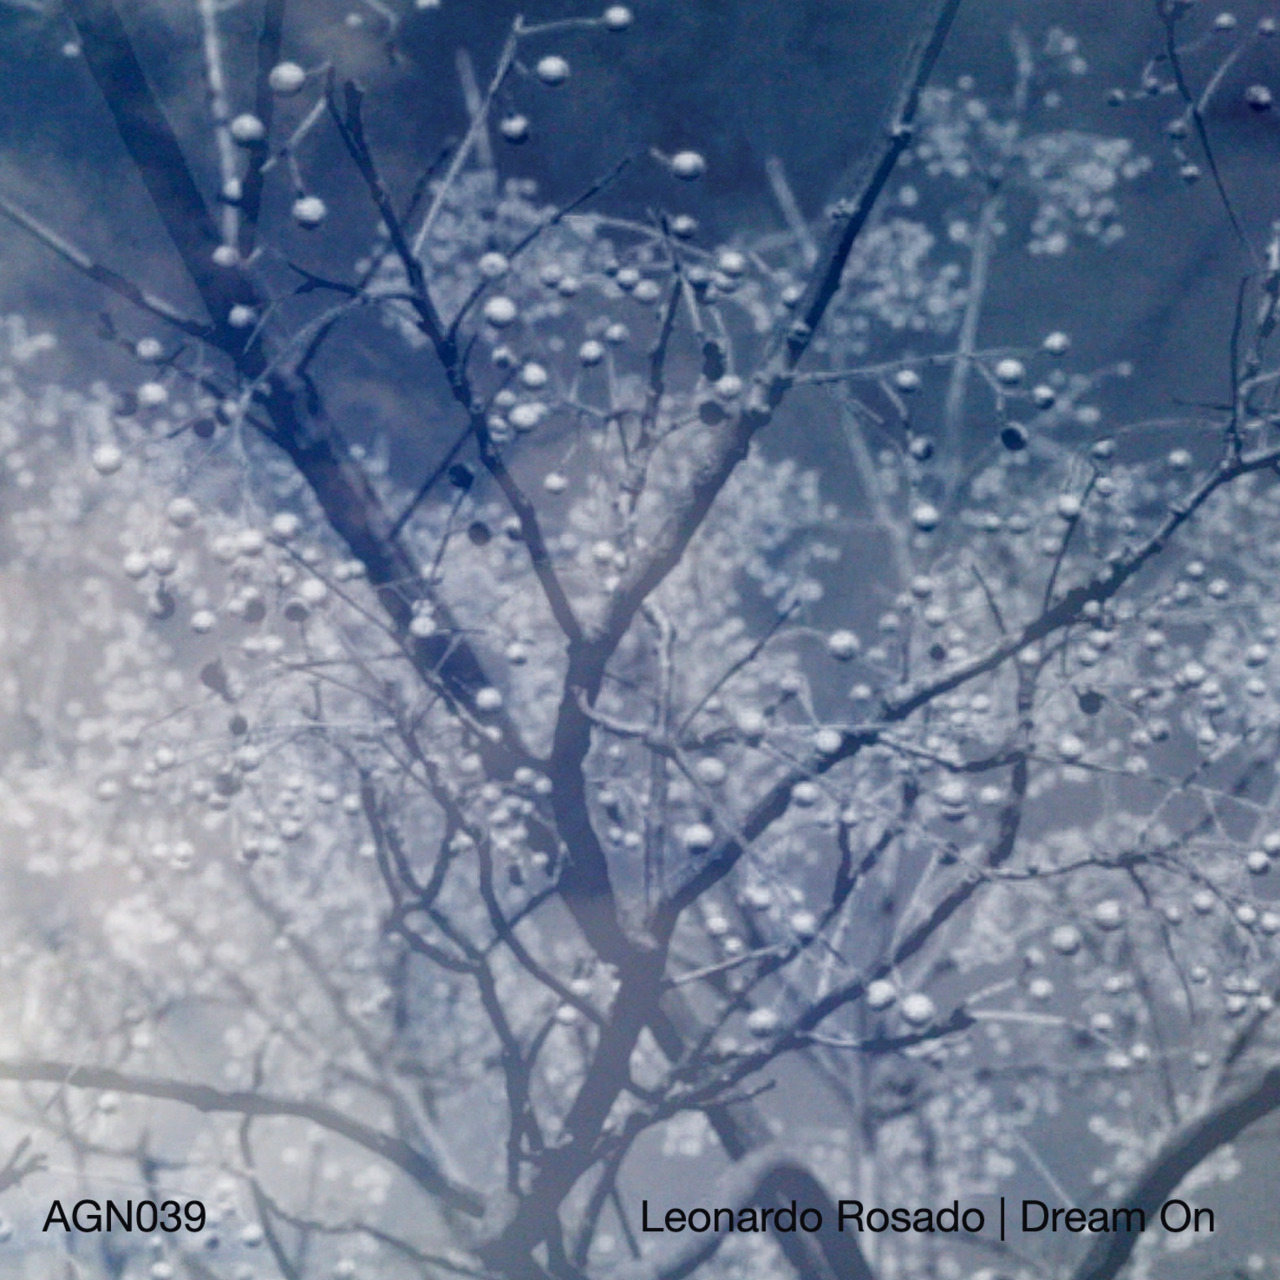 LEONARDO ROSADO - Dream On released by AudioGourmet (2011)  LISTEN/DOWNLOAD HERE Next on Audio Gourmet we welcome aboard Leonardo Rosado, an artist and curator of the Feedback Loop netlabel. Aside from running Feedback Loop, Leonardo's main musical focus explores the collision between sound, poetry and everyday life by using automatic expressions that he likes to call 'wordsoundscapes'. The construction of his music pieces expose daily life happenings that are individual and at the same time universal; it has a strong sense of suggesting a pause to think about our actions and our surroundings. Words and sounds have different meanings depending on the listener, but only if they take the time to delve into the complexity of their own stimuli. His past discography includes work released on the likes of his own Feedback Loop label as well as Test Tube, Relaxed Machinery, Public Spaces Lab, XS Records and Clinical Archives In addition to the sounds you can hear in 'Dream On', here is a collection of short poems for each track that offering an insight into the concept behind this project: REBUILDING THE DREAM here I am trying to fit old memories in new clothing forcing my rebirth DREAM ON feeling the heartbeat like a new born seeing through belly skin WIPED OUT when I hear that ringing I know that nothing will be left of me nothing worth singing about SLEEPLESS MURMUR turning around in bed counting sheep closing the eyes in darkness. nothing will stop the unrest the murmur of change